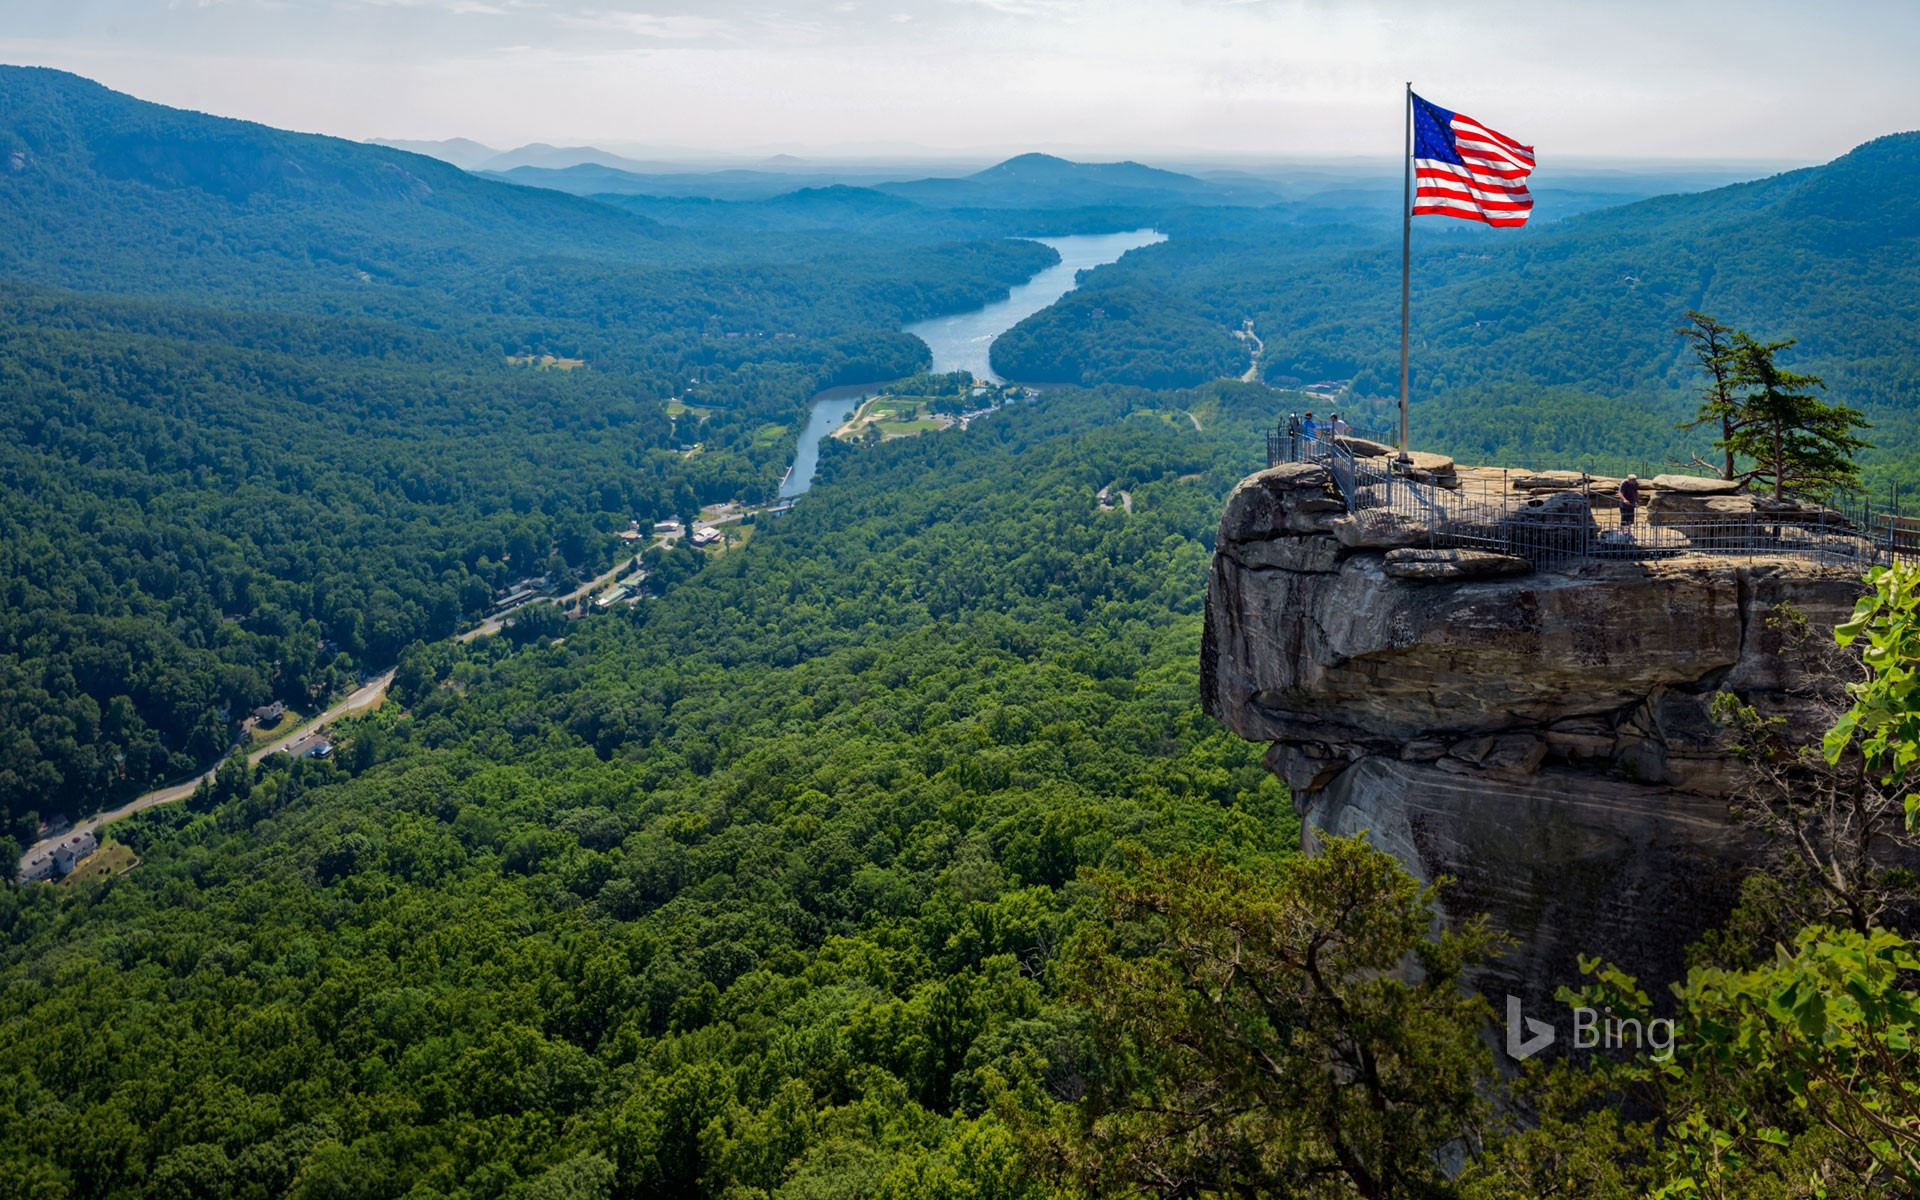 Chimney Rock State Park in North Carolina